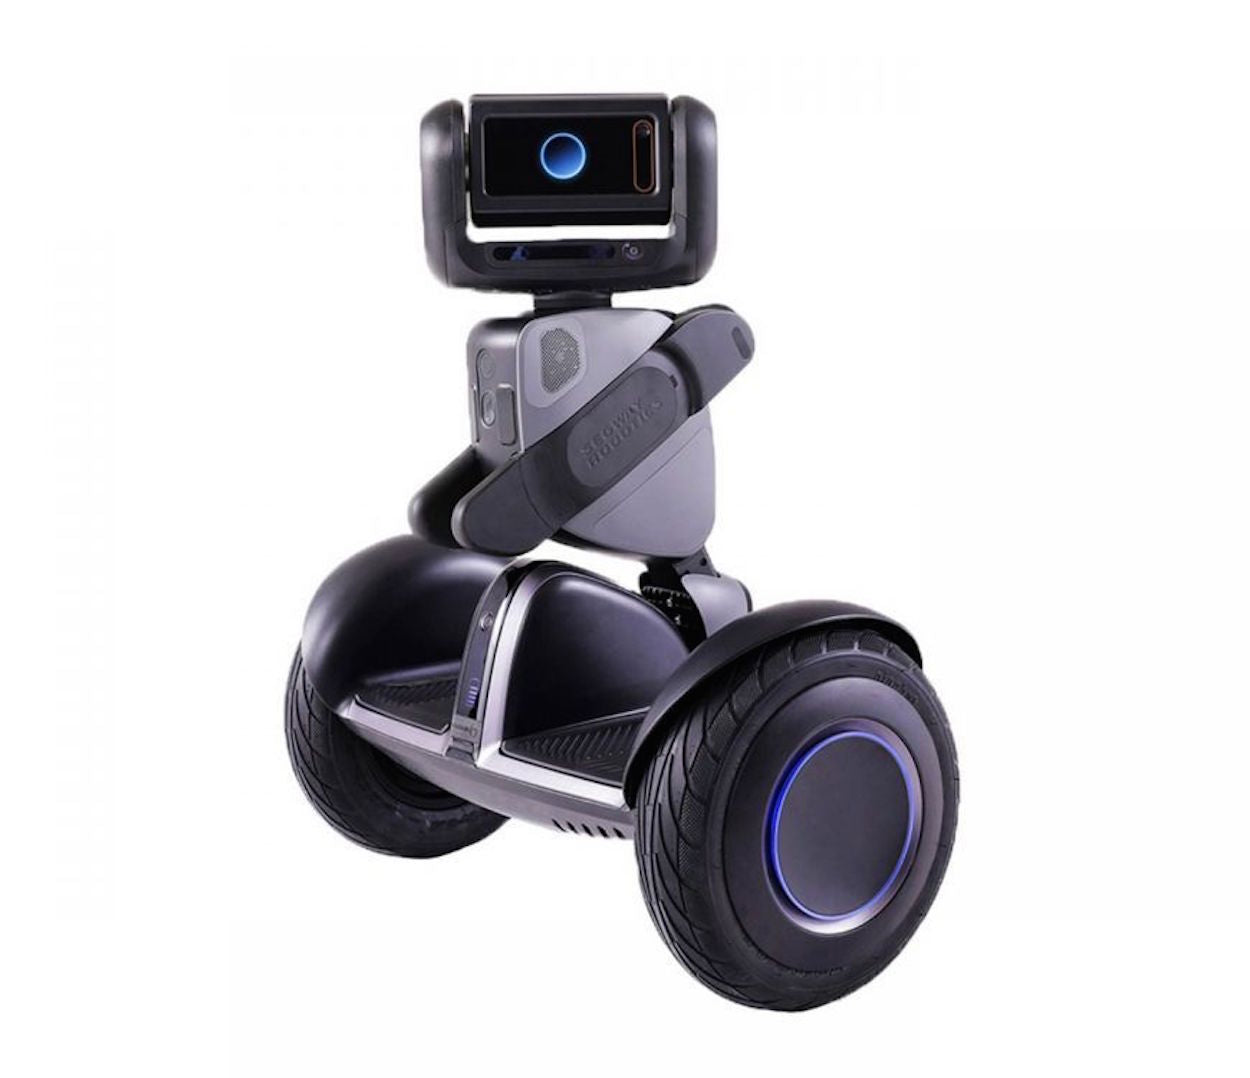 Segway Ninebot LOOMO Advanced Personal Robot and Personal Transporter